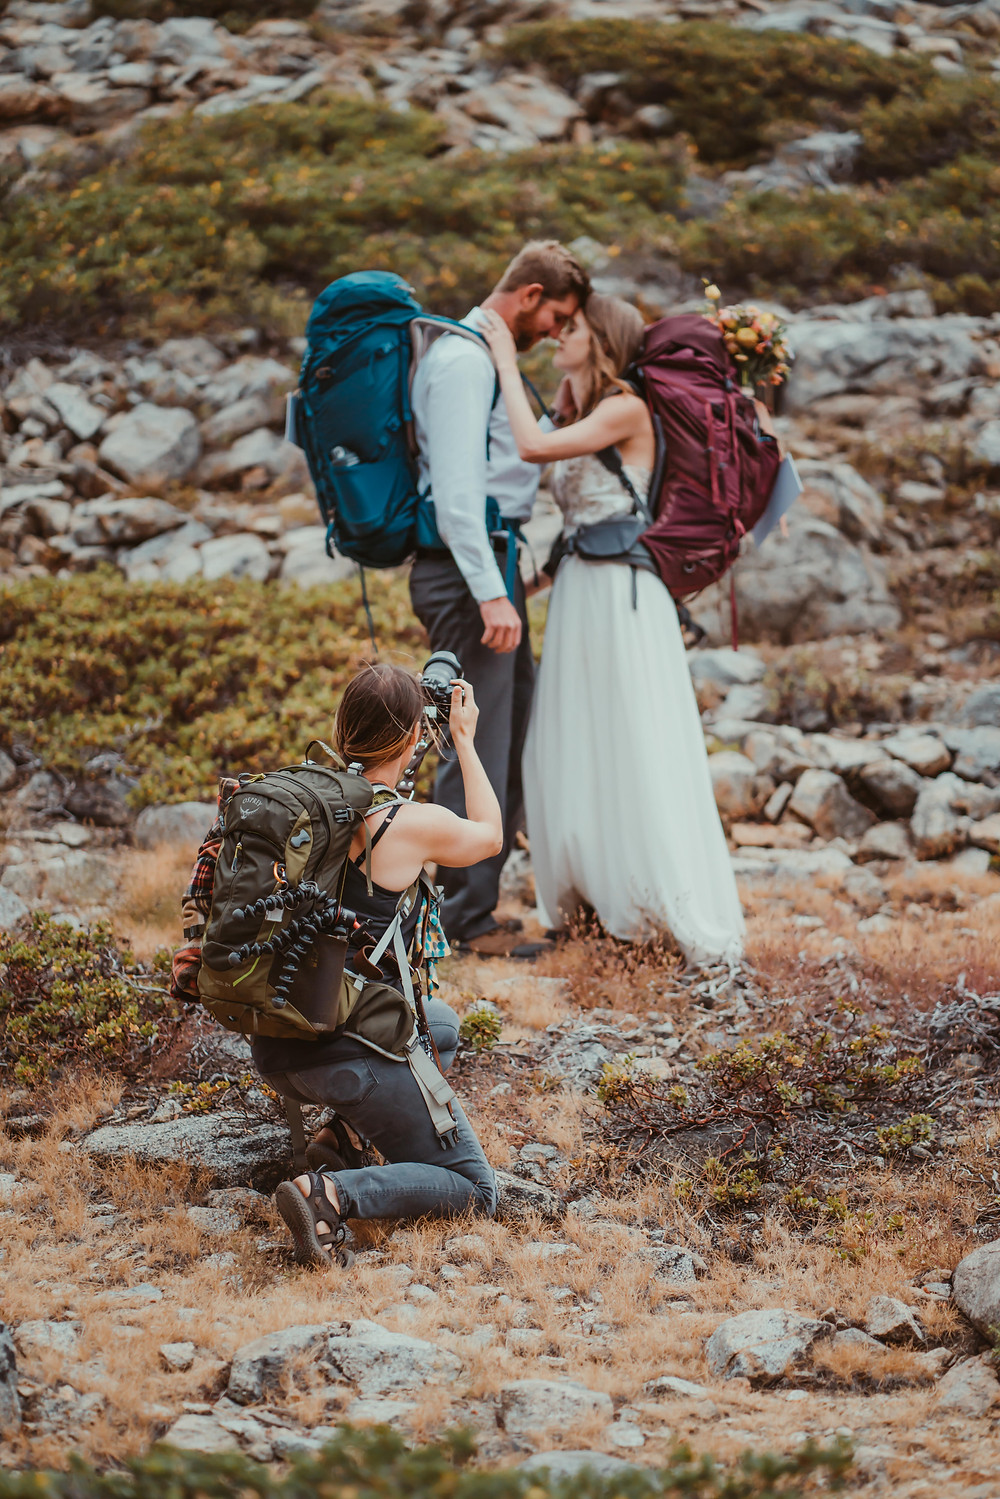 A photographer taking pictures of an elopement couple dressed in wedding attire and carrying their hiking backpacks